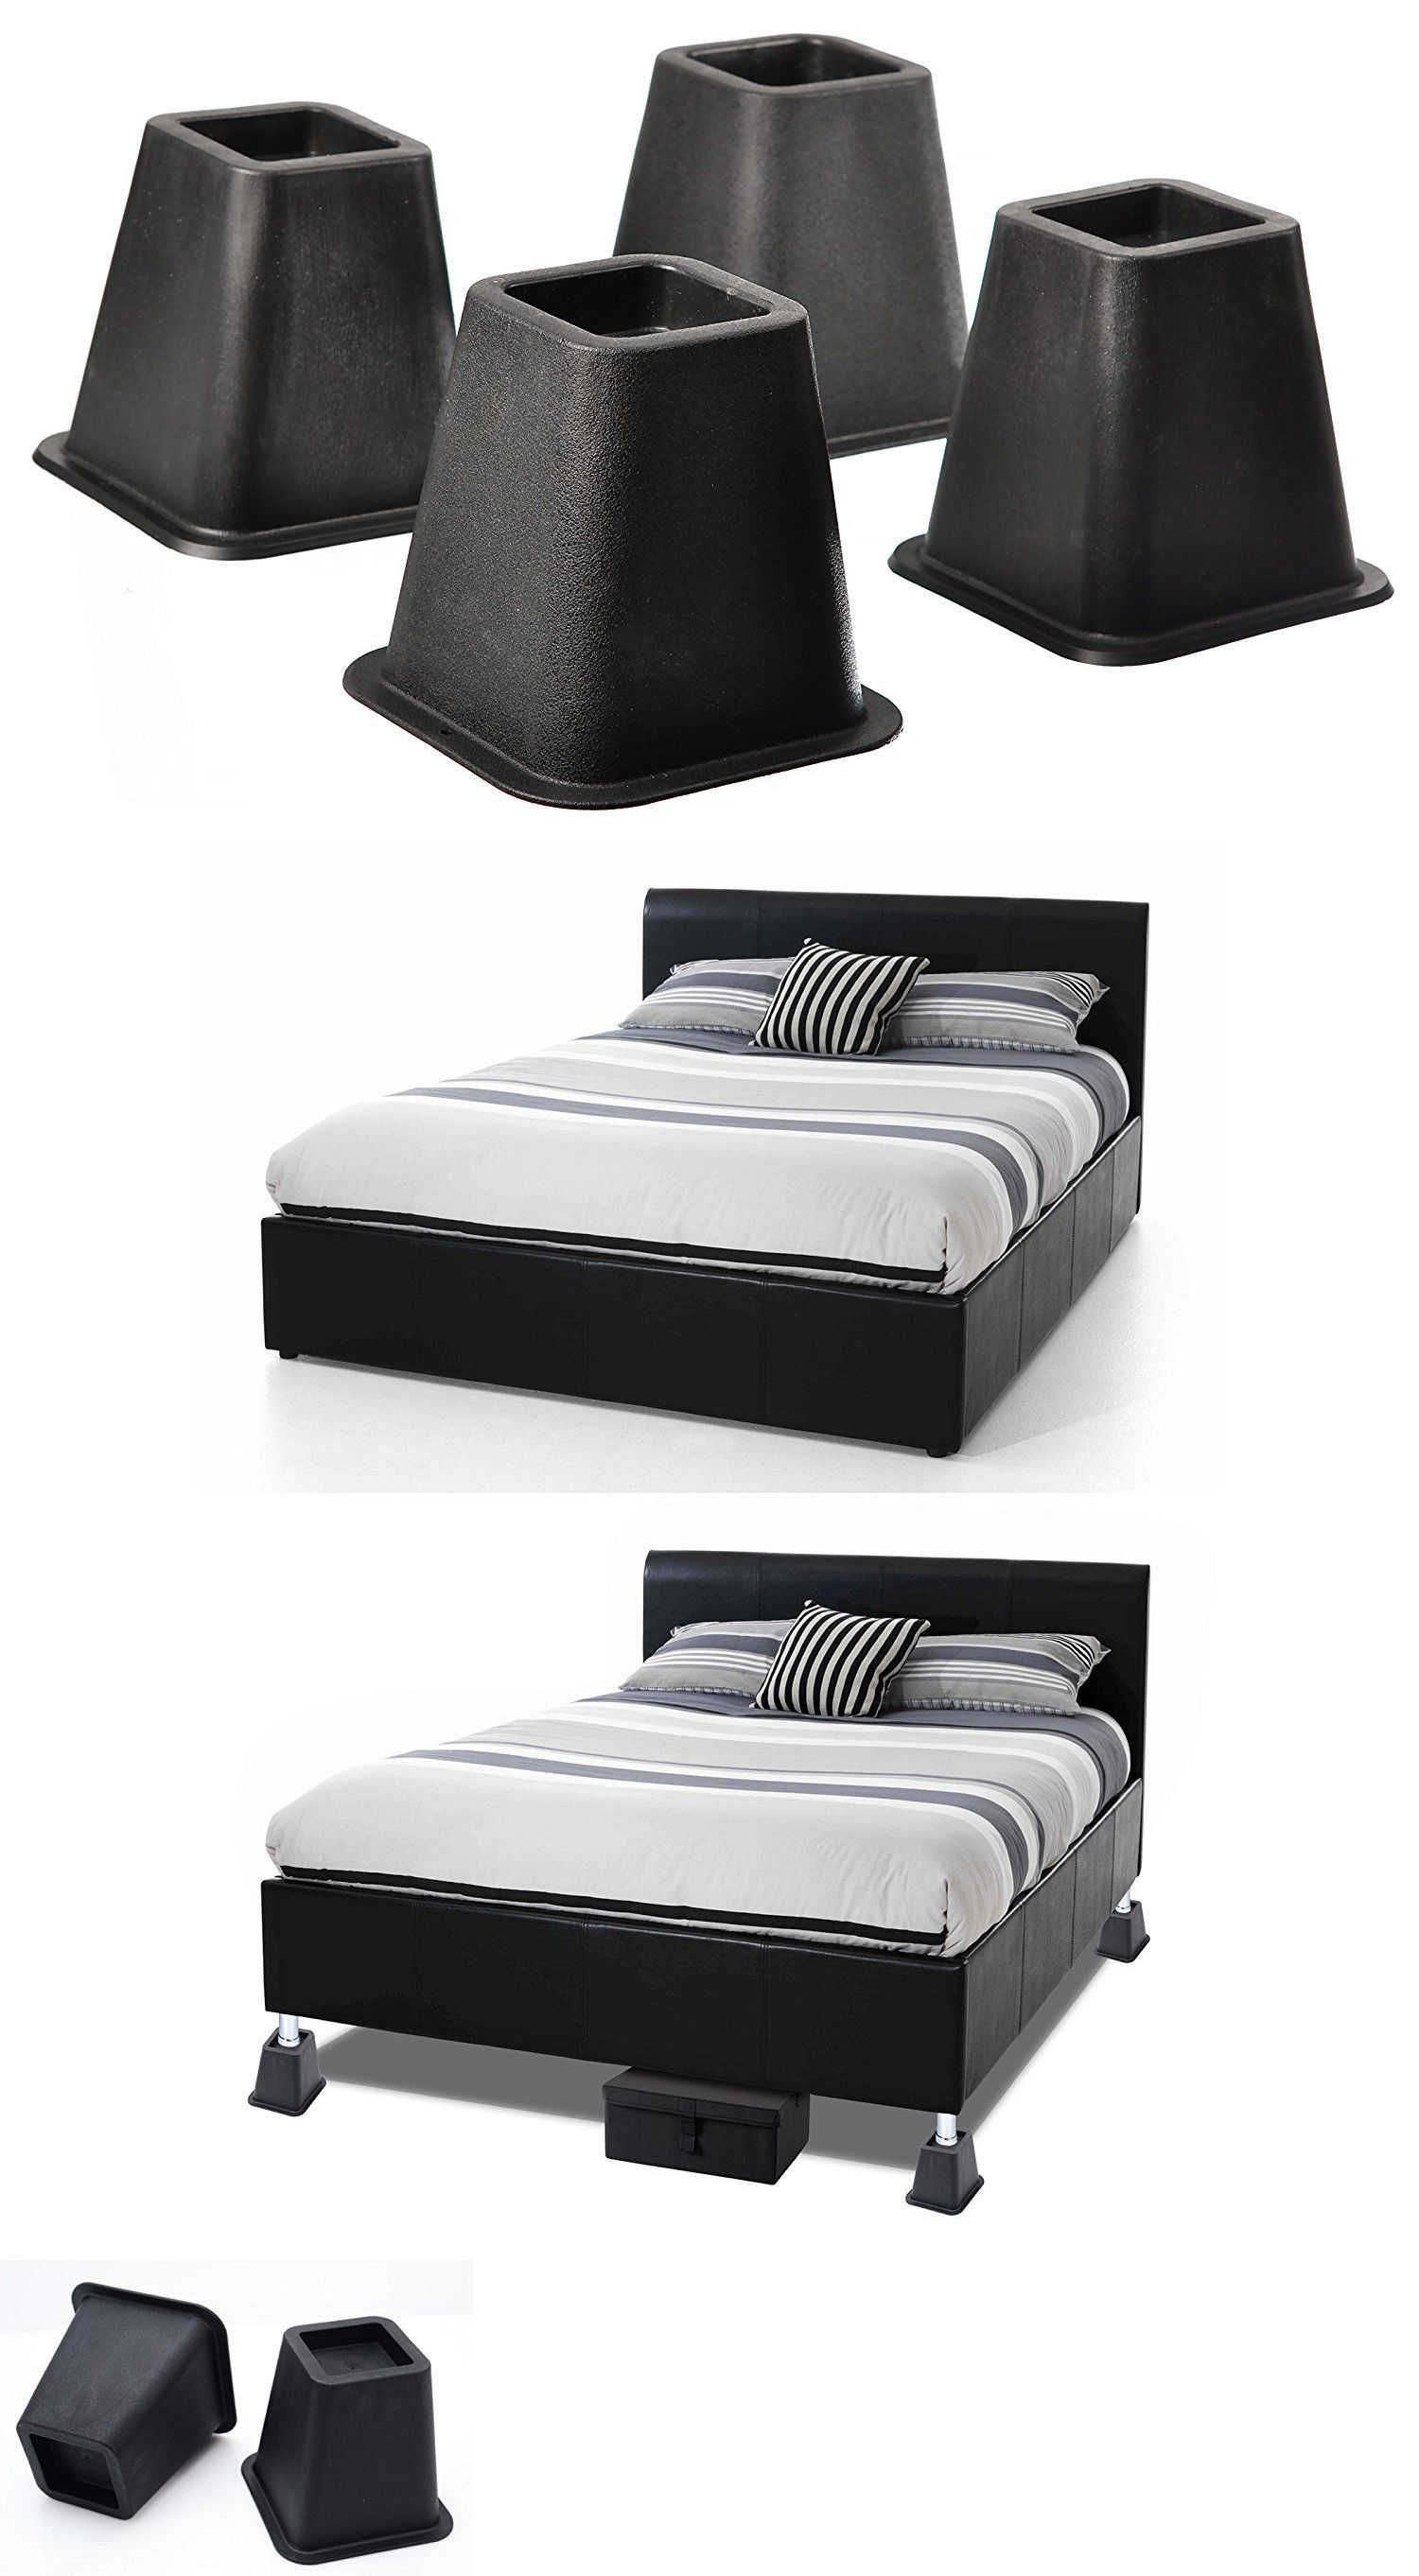 Details About Bed Risers Or Furniture Riser Bed Lifts In Height